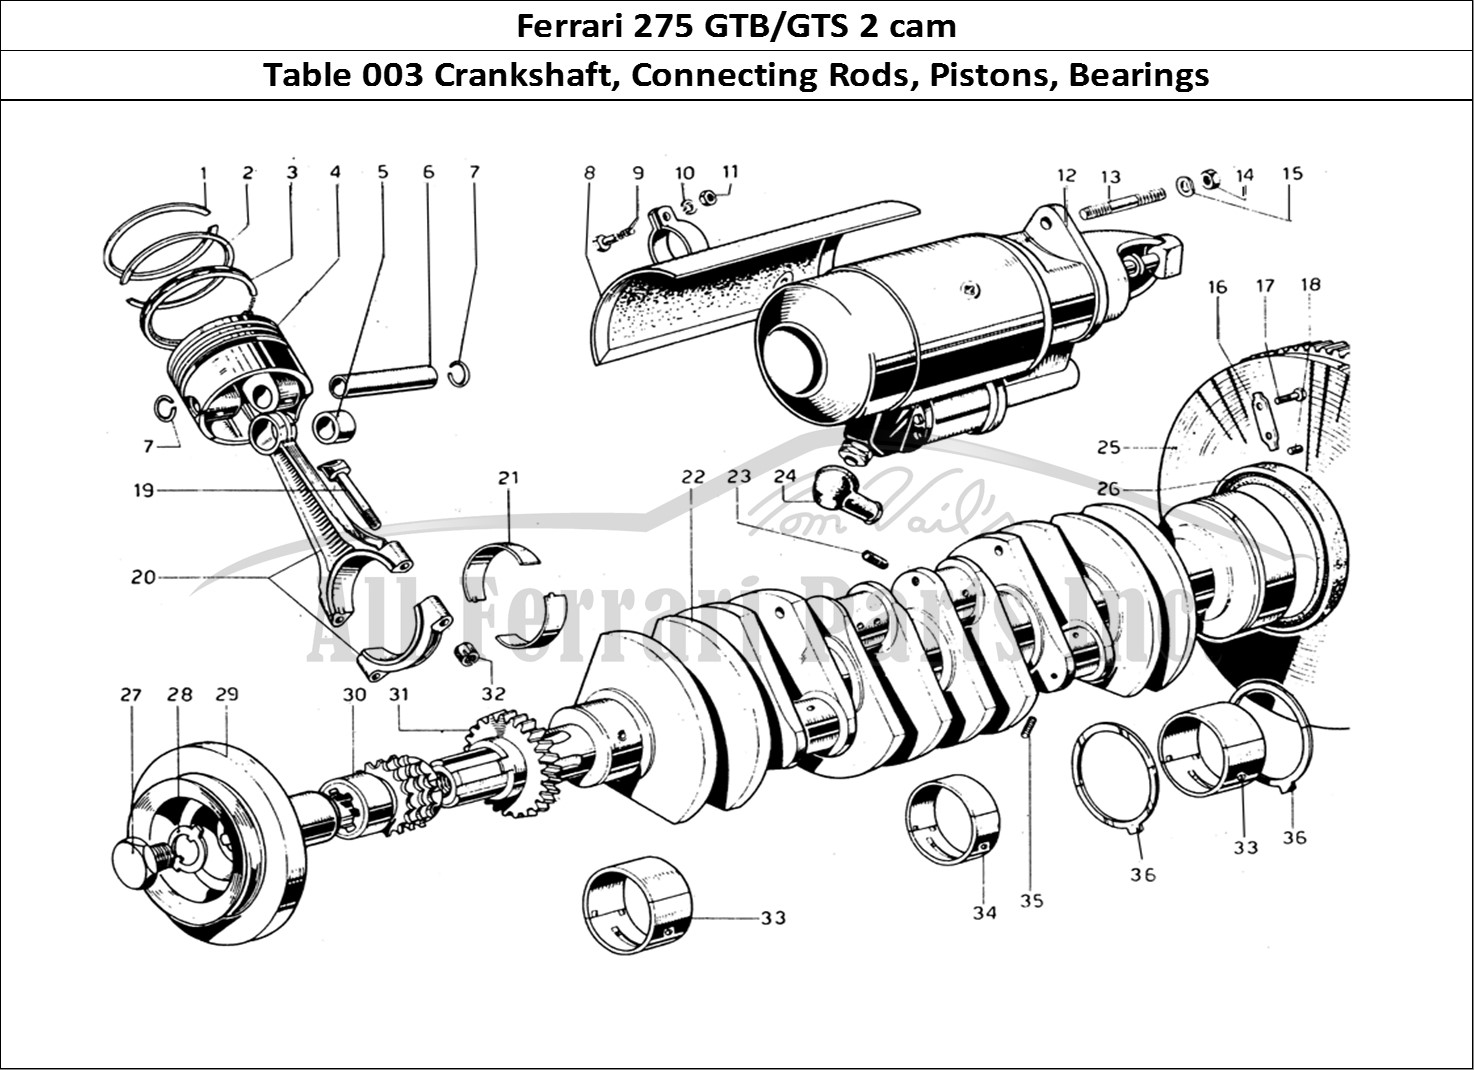 Buy Original Ferrari 275 Gtb Gts 2 Cam 003 Crankshaft